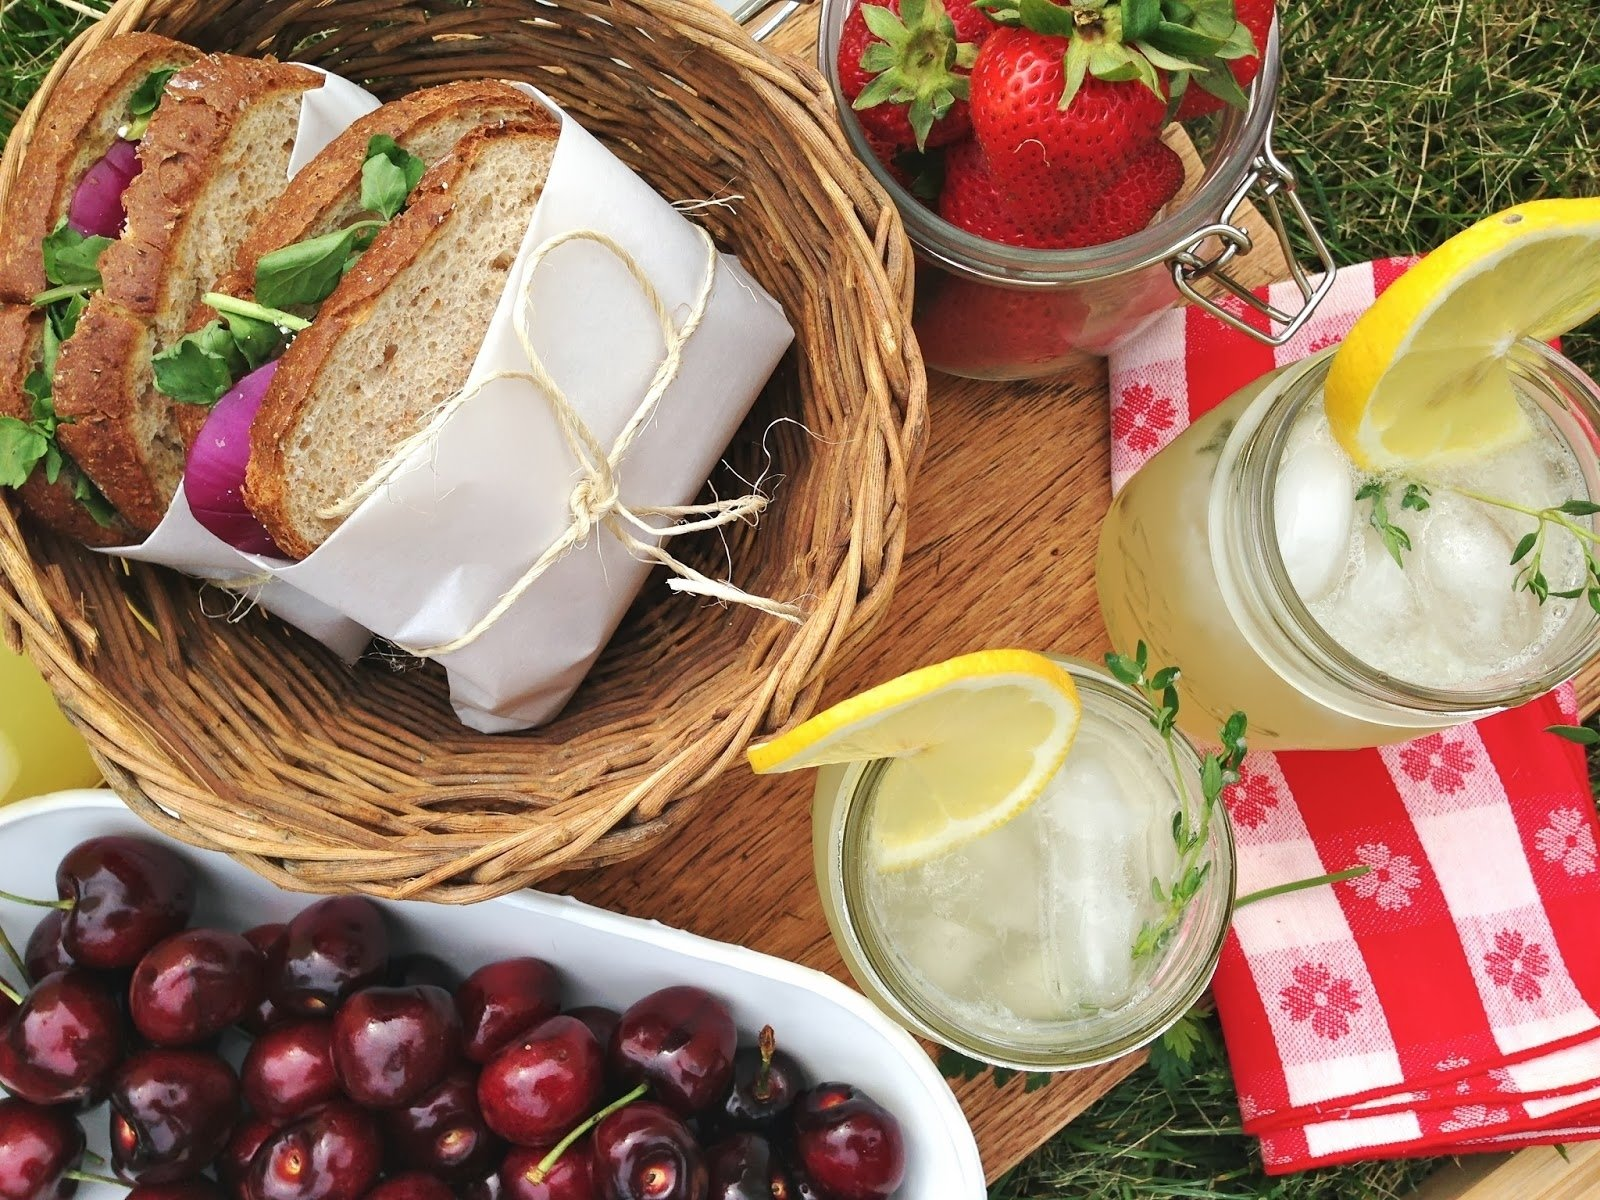 10 Gorgeous Picnic Food Ideas For Two picnic date night e29da3 pinterest picnics picnic foods and food 2 2020